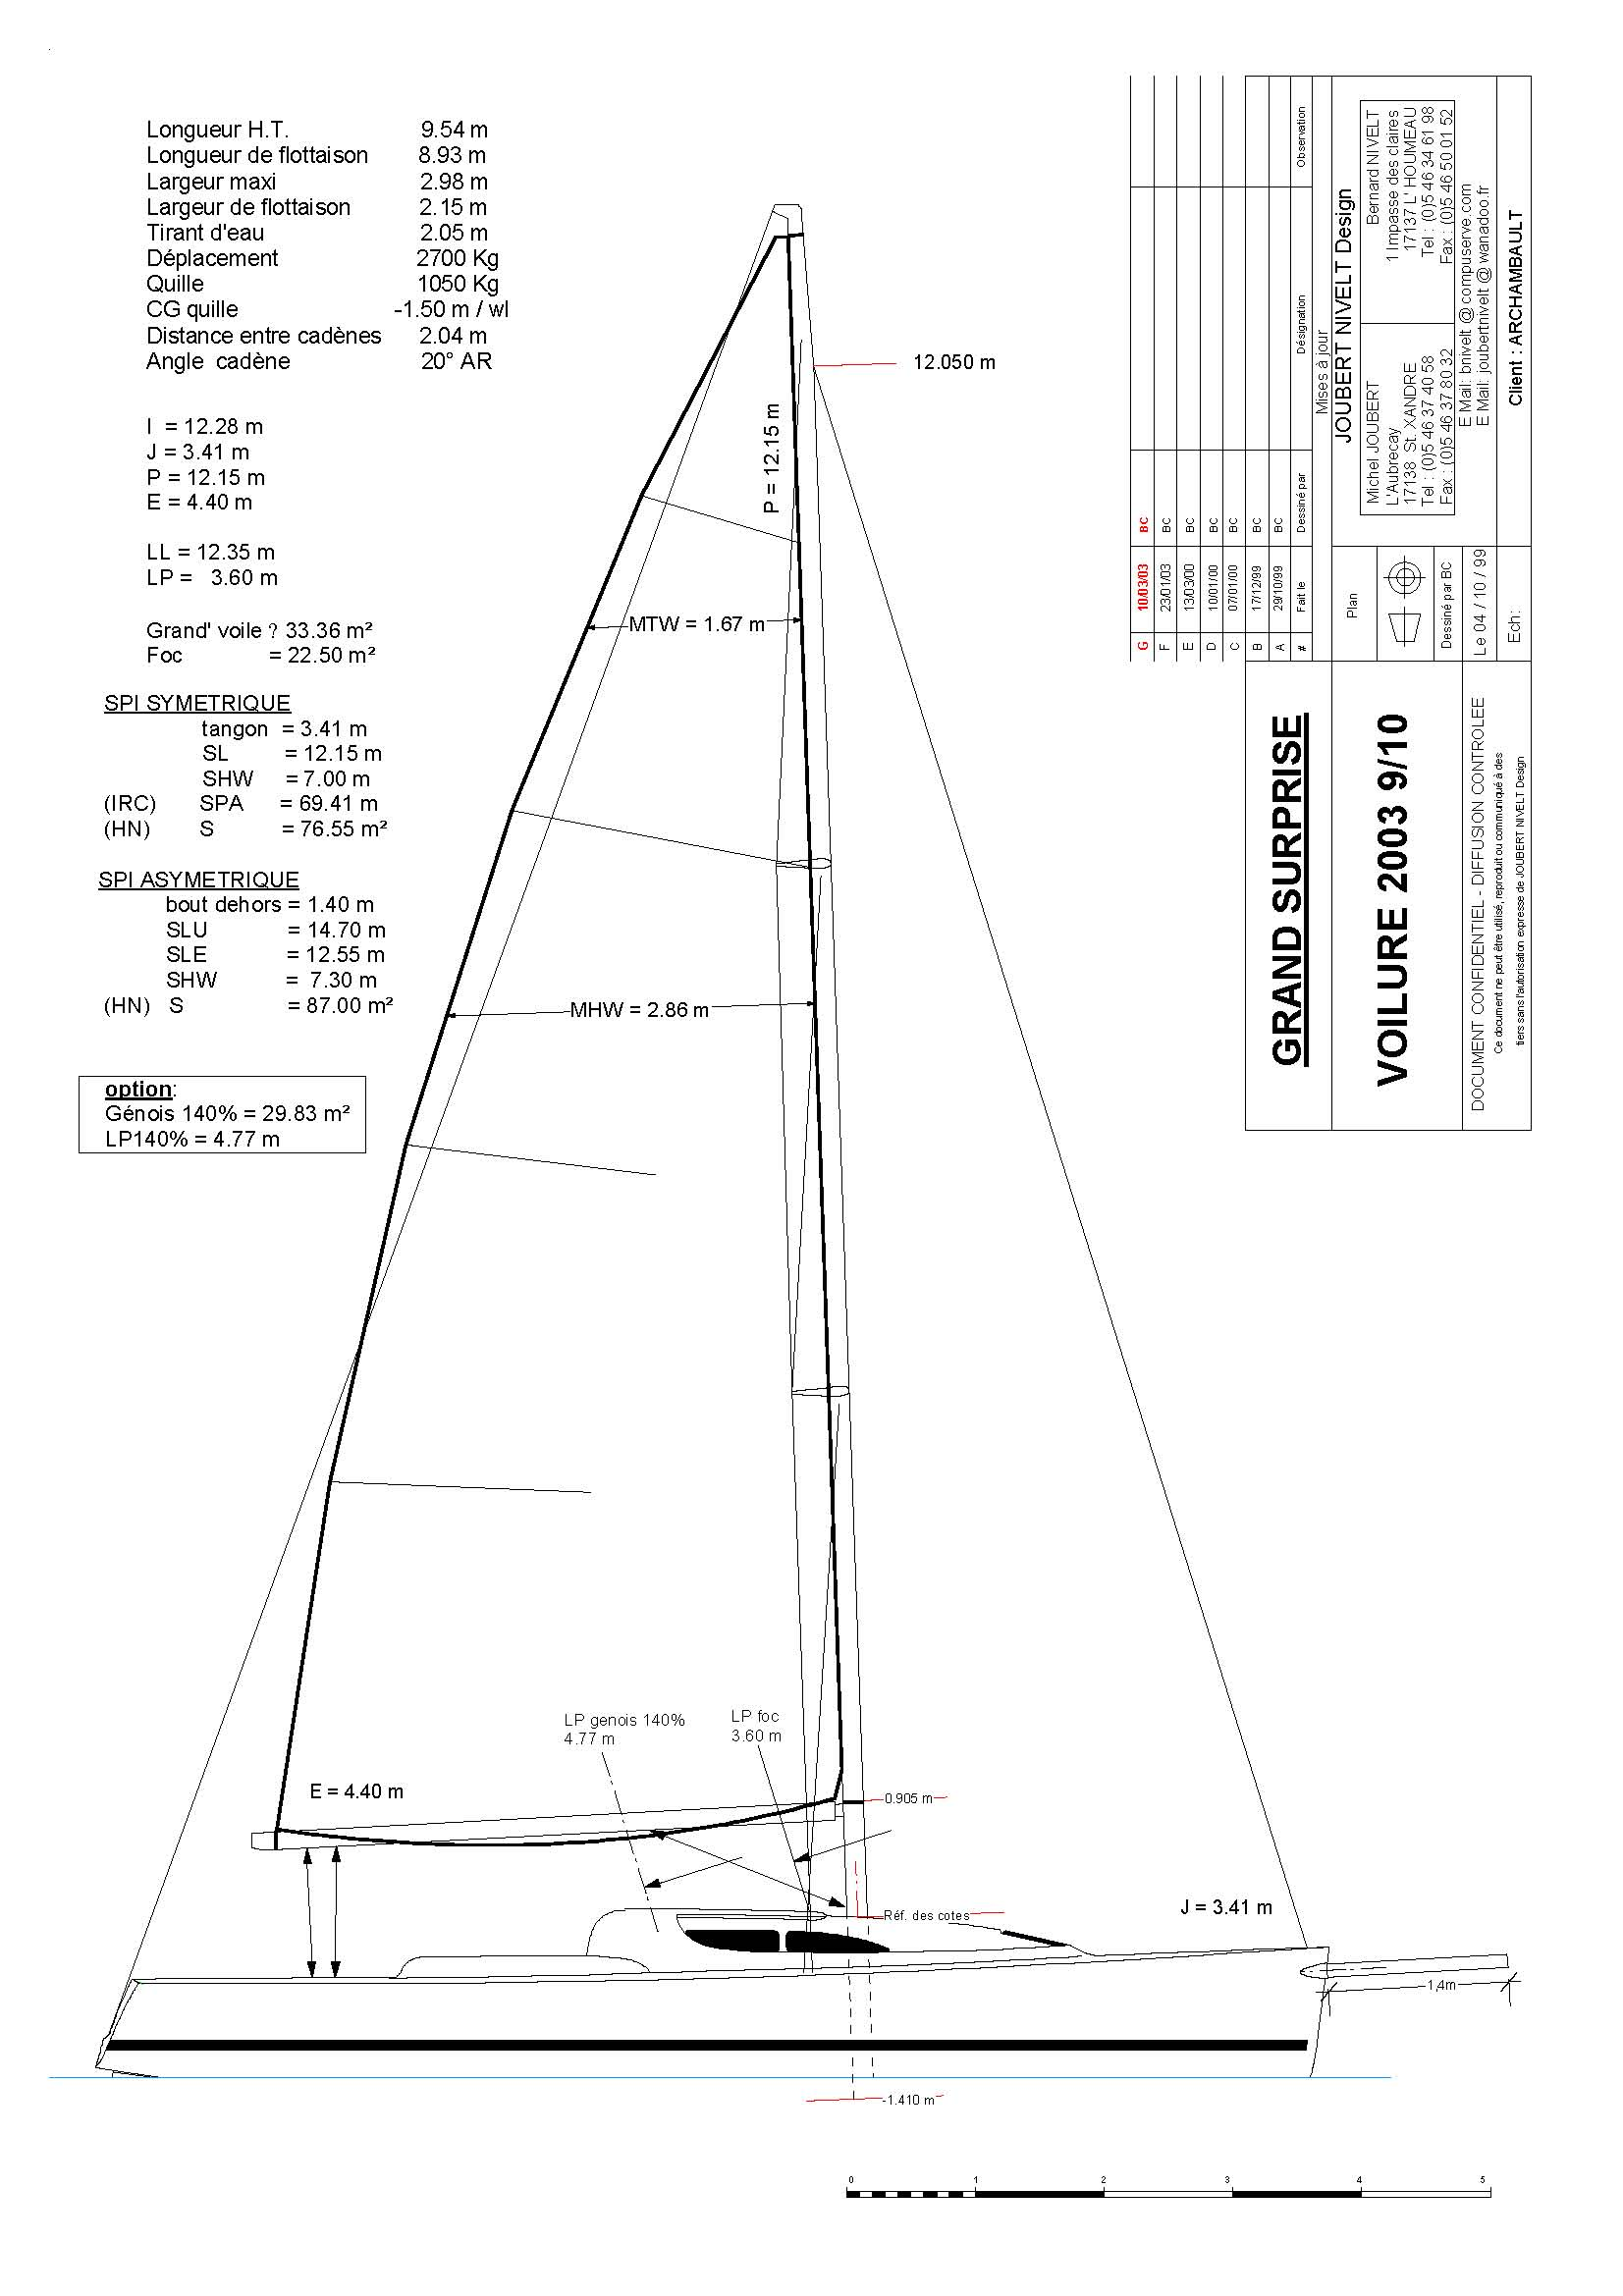 Sailboat barcelonasail sail plan of my sail boat samba an archambault grand surprise altavistaventures Image collections